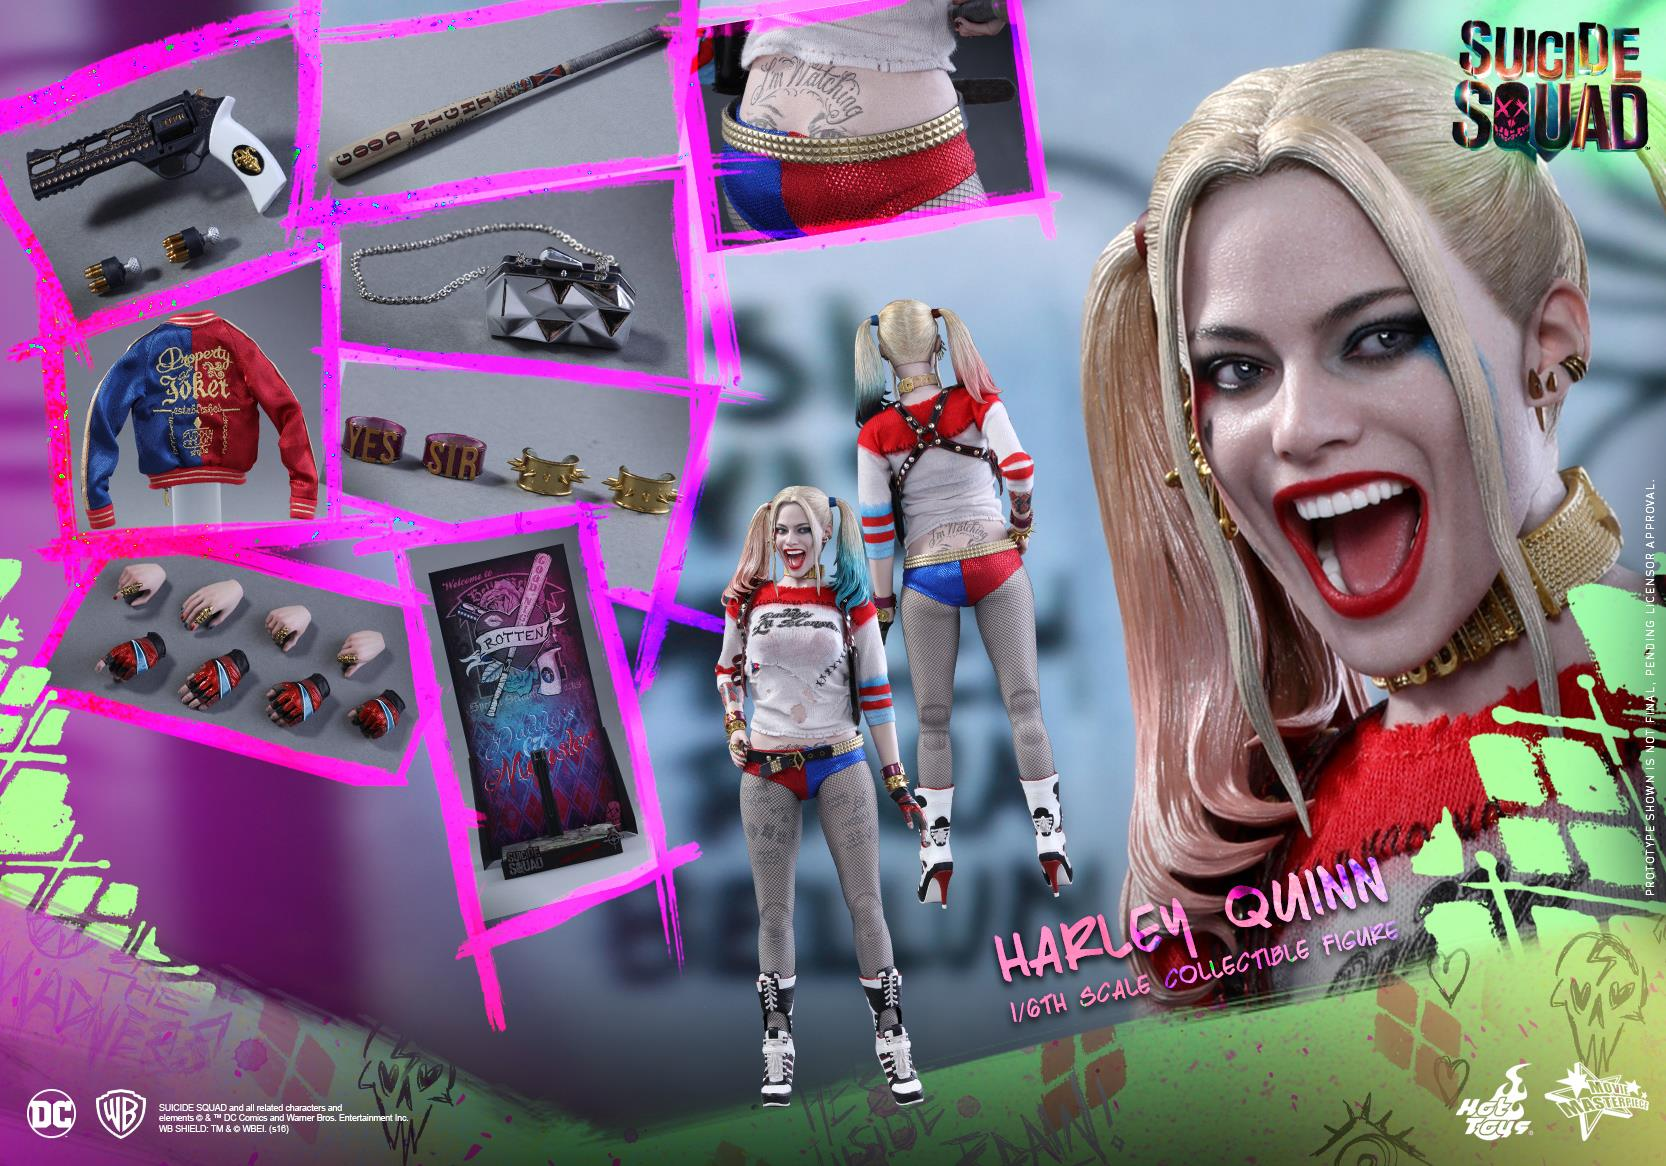 Hot-Toys-Suicide-Squad-Harley-Quinn-17